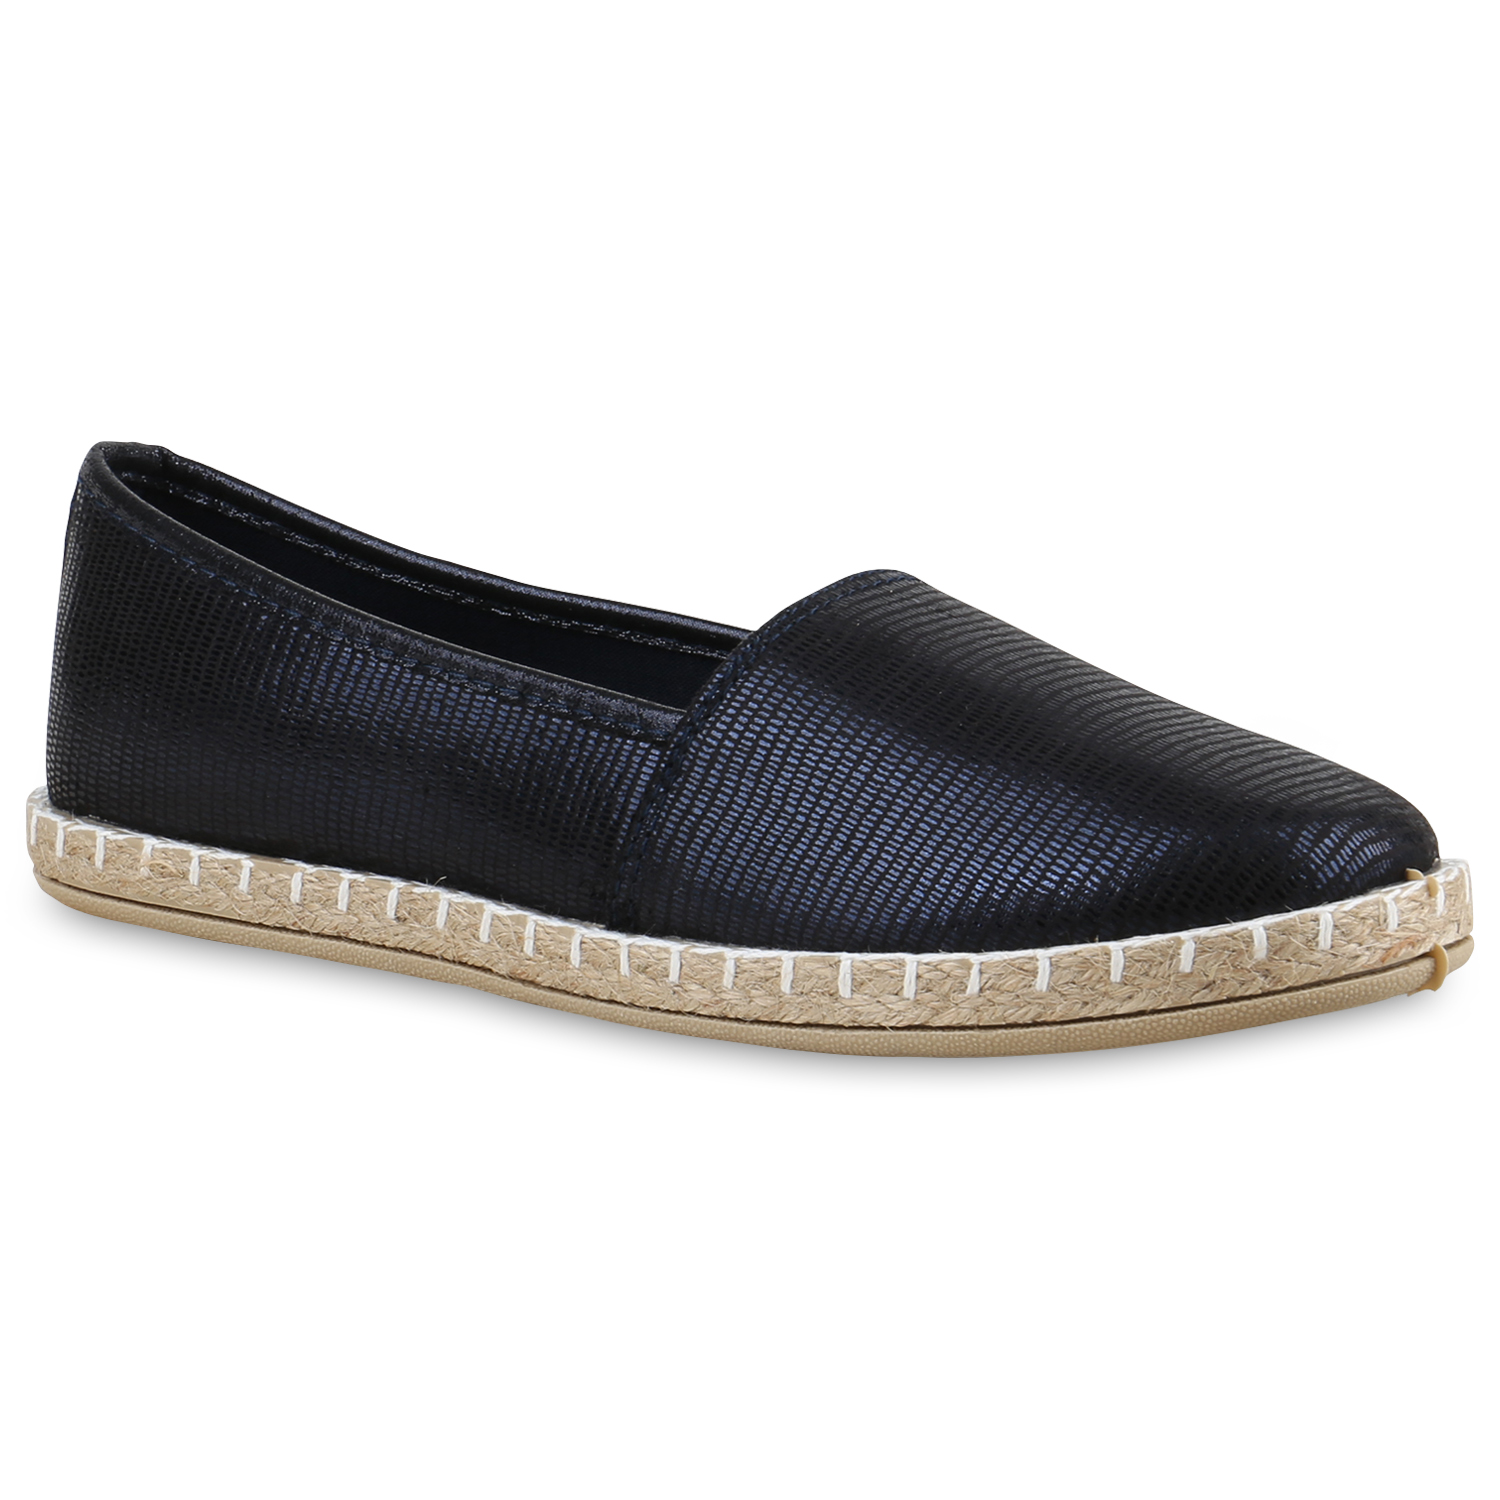 damen slipper espadrilles schuhe flats metallic glitzer slipper 815741 ebay. Black Bedroom Furniture Sets. Home Design Ideas